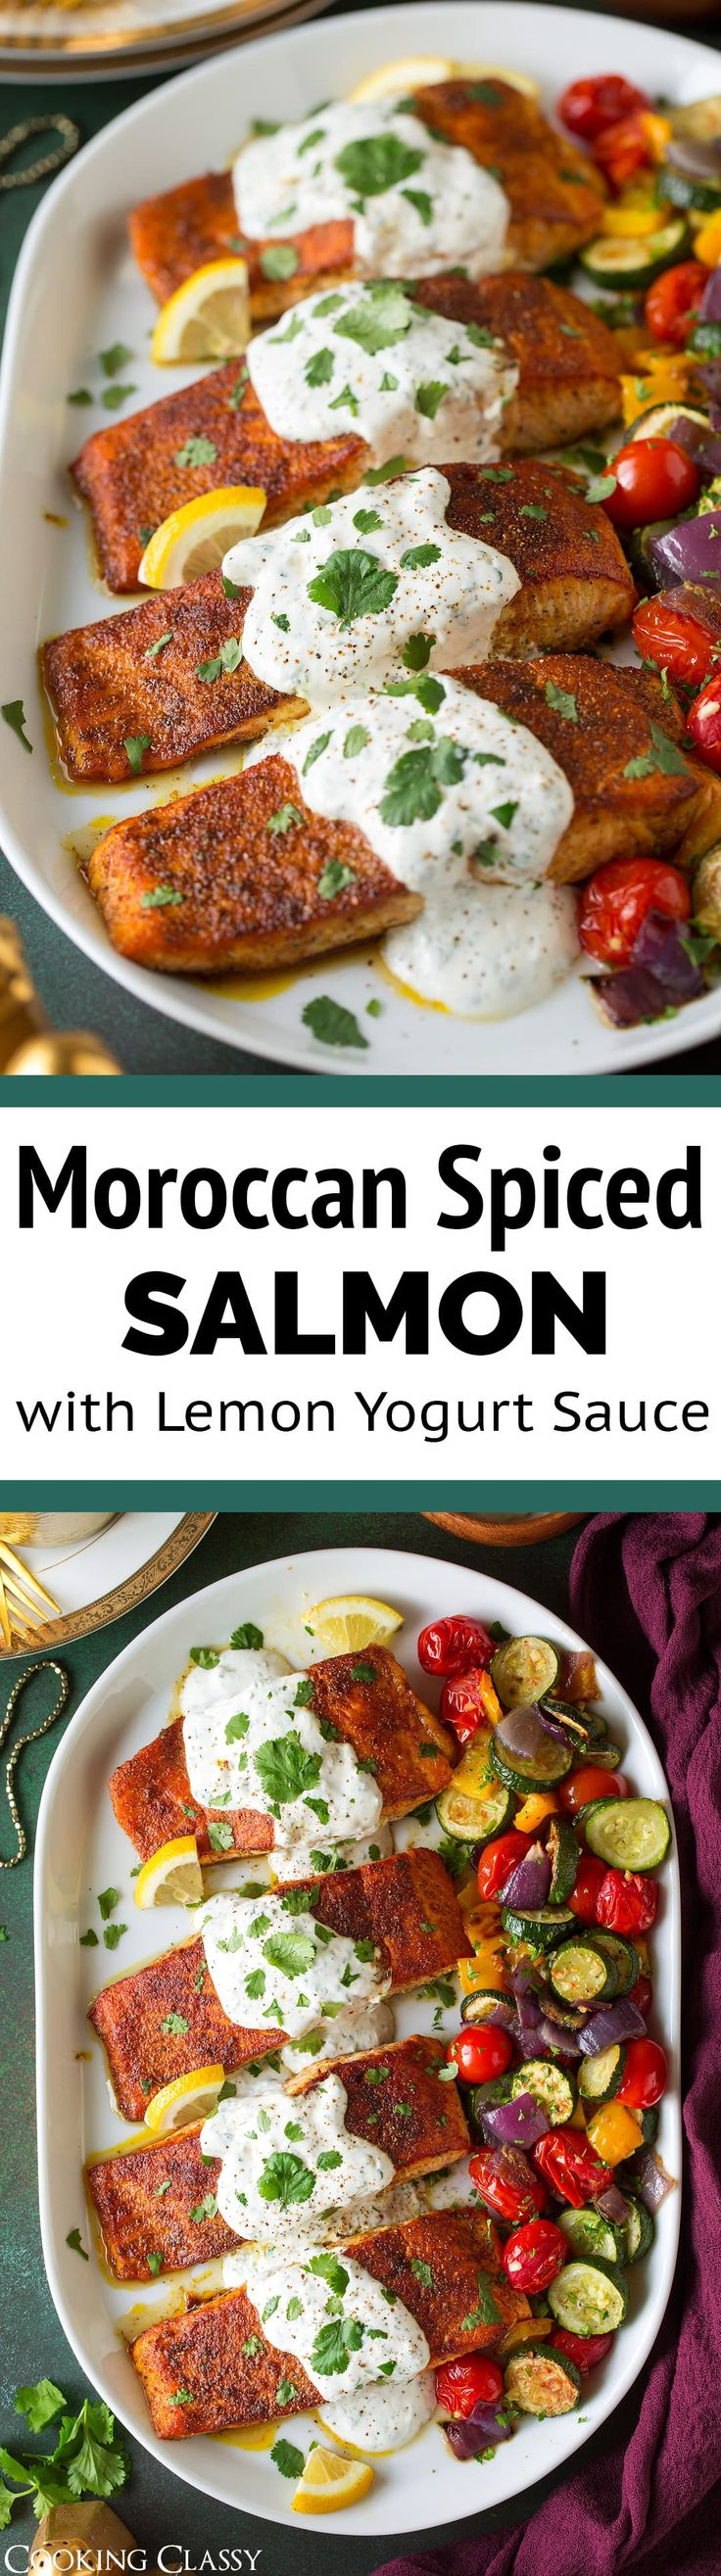 Moroccan Spiced Salmon with Creamy Lemon Yogurt Sauce